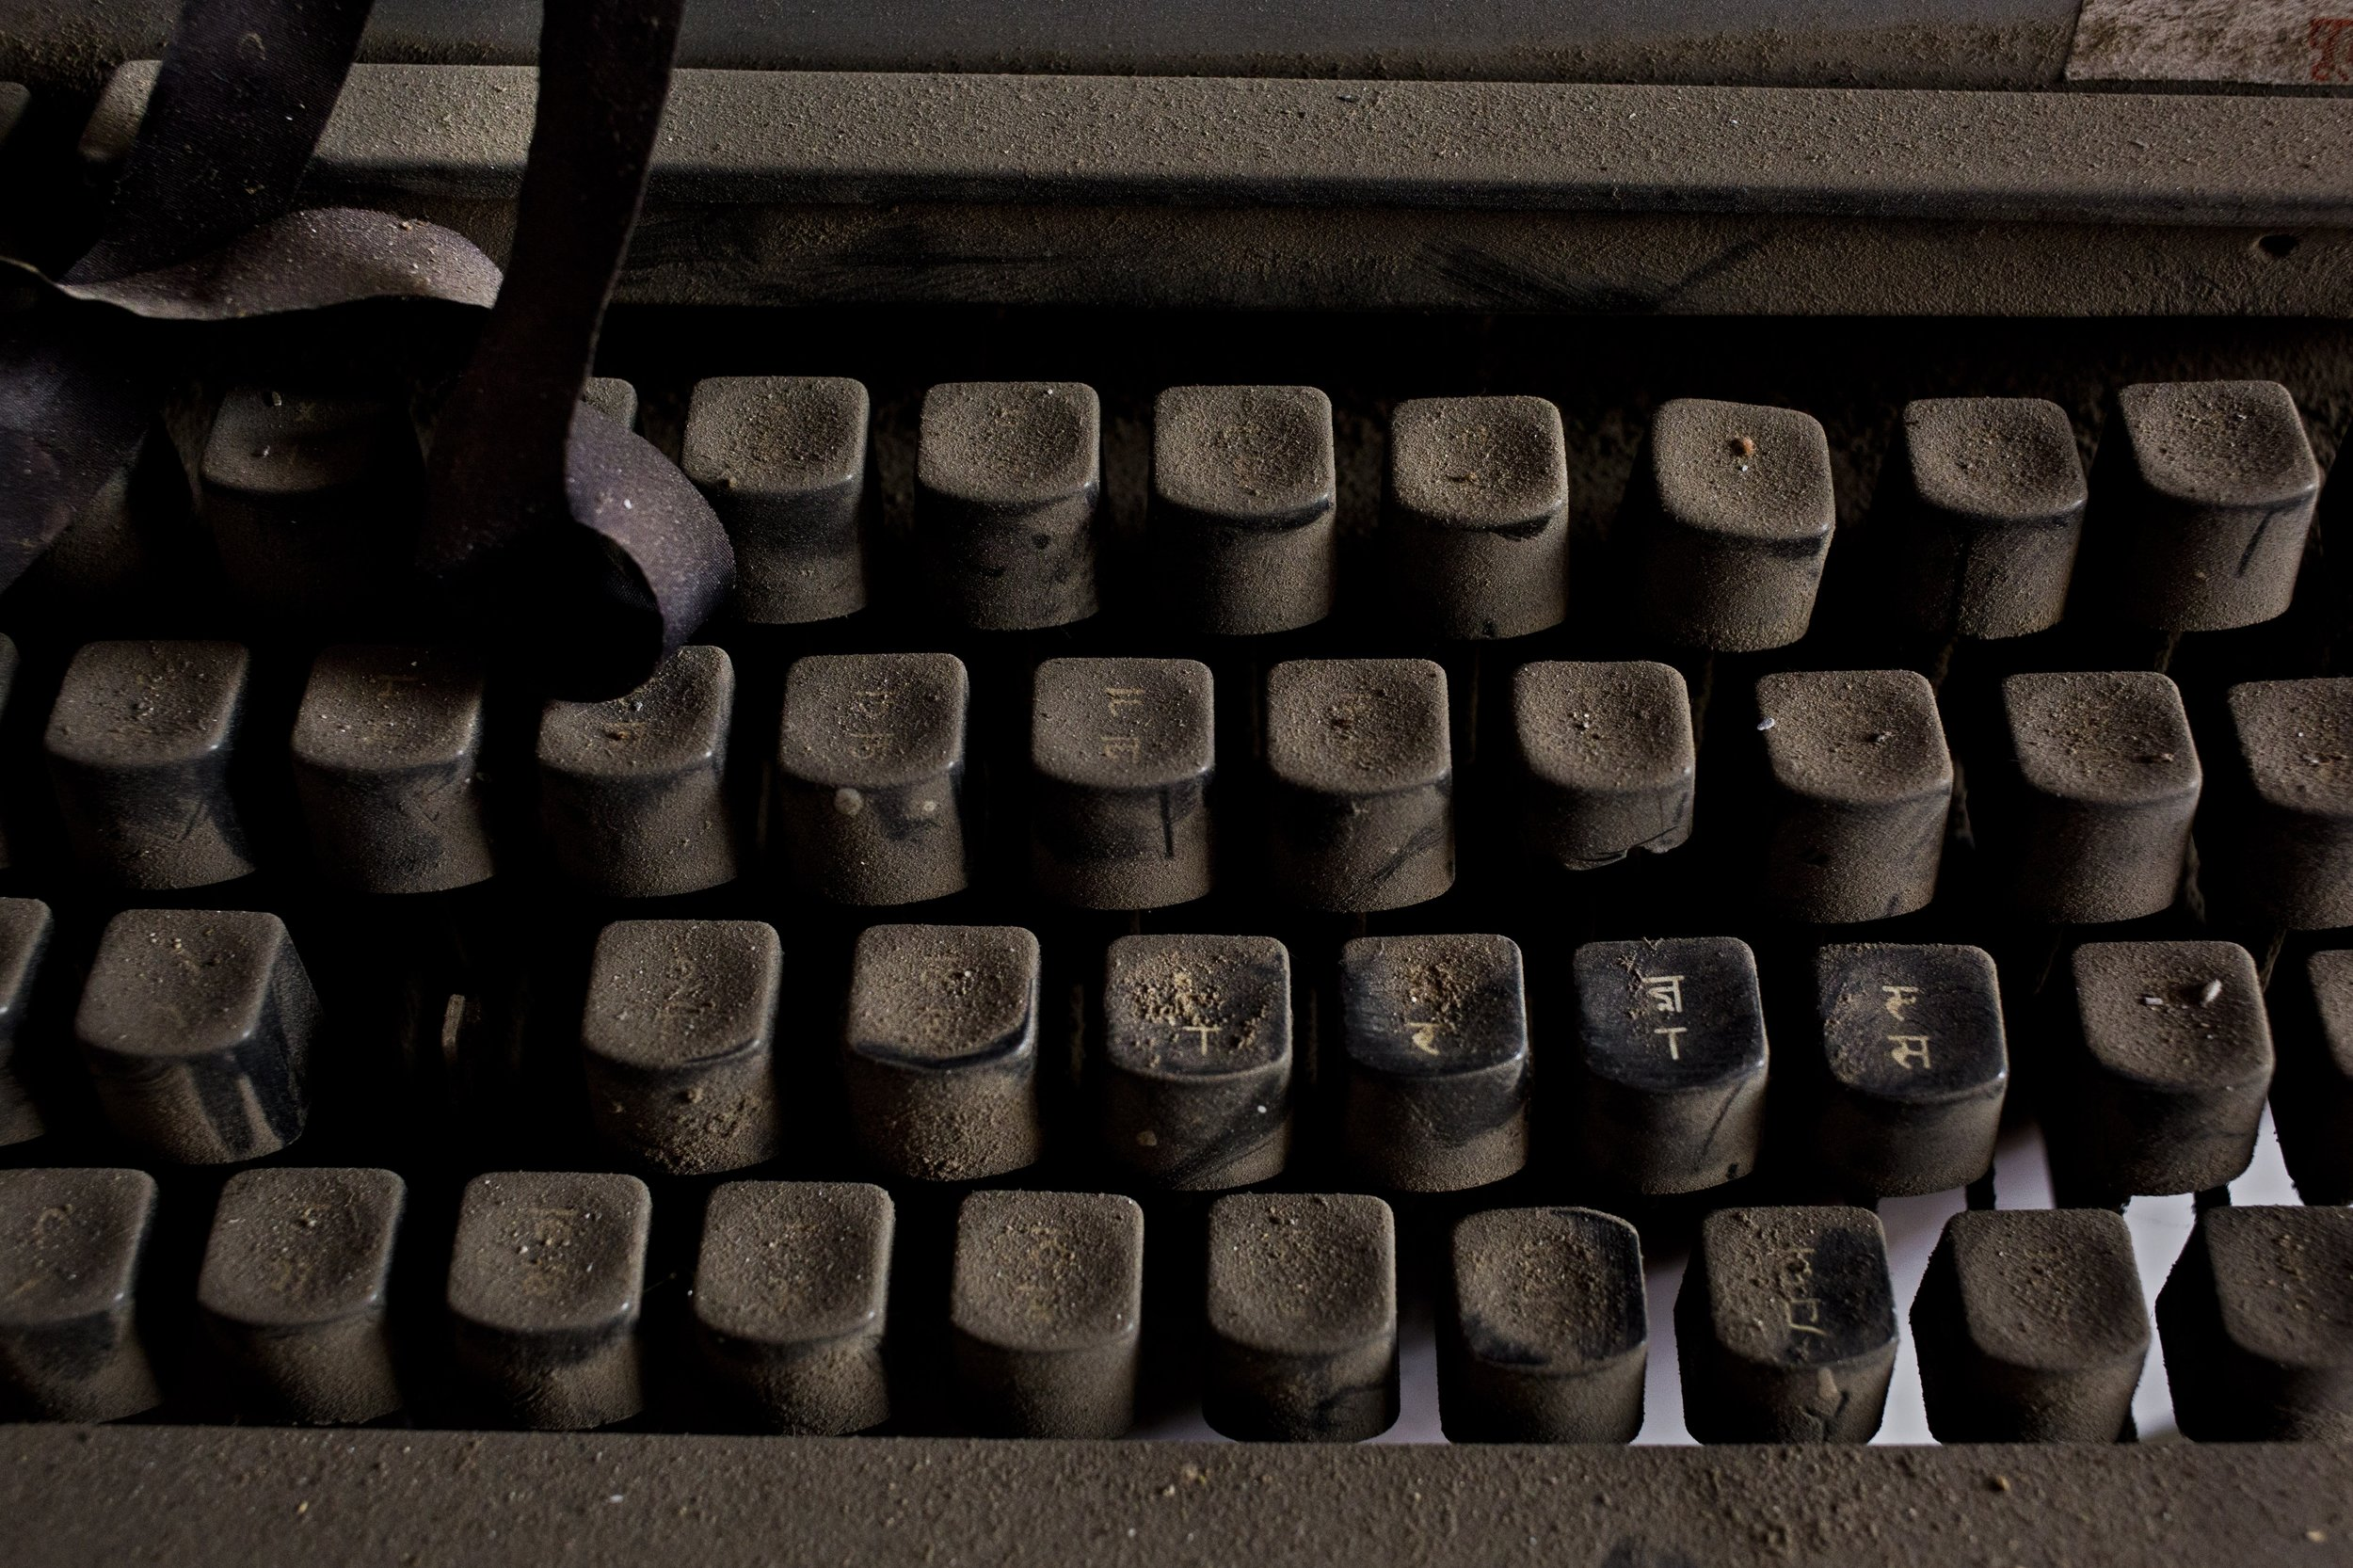 In this Jan. 16, 2017 photo, an old Remington 2000 typewriter lies covered in dust in New Delhi, India. In India, the typewriter was never just a piece of office equipment. It was a sign of education, of professional achievement, of women's growing independence as they slowly entered the workforce. But in one of the last places in the world where it remains a part of everyday life, twilight is at hand. (AP Photo/Bernat Armangue)